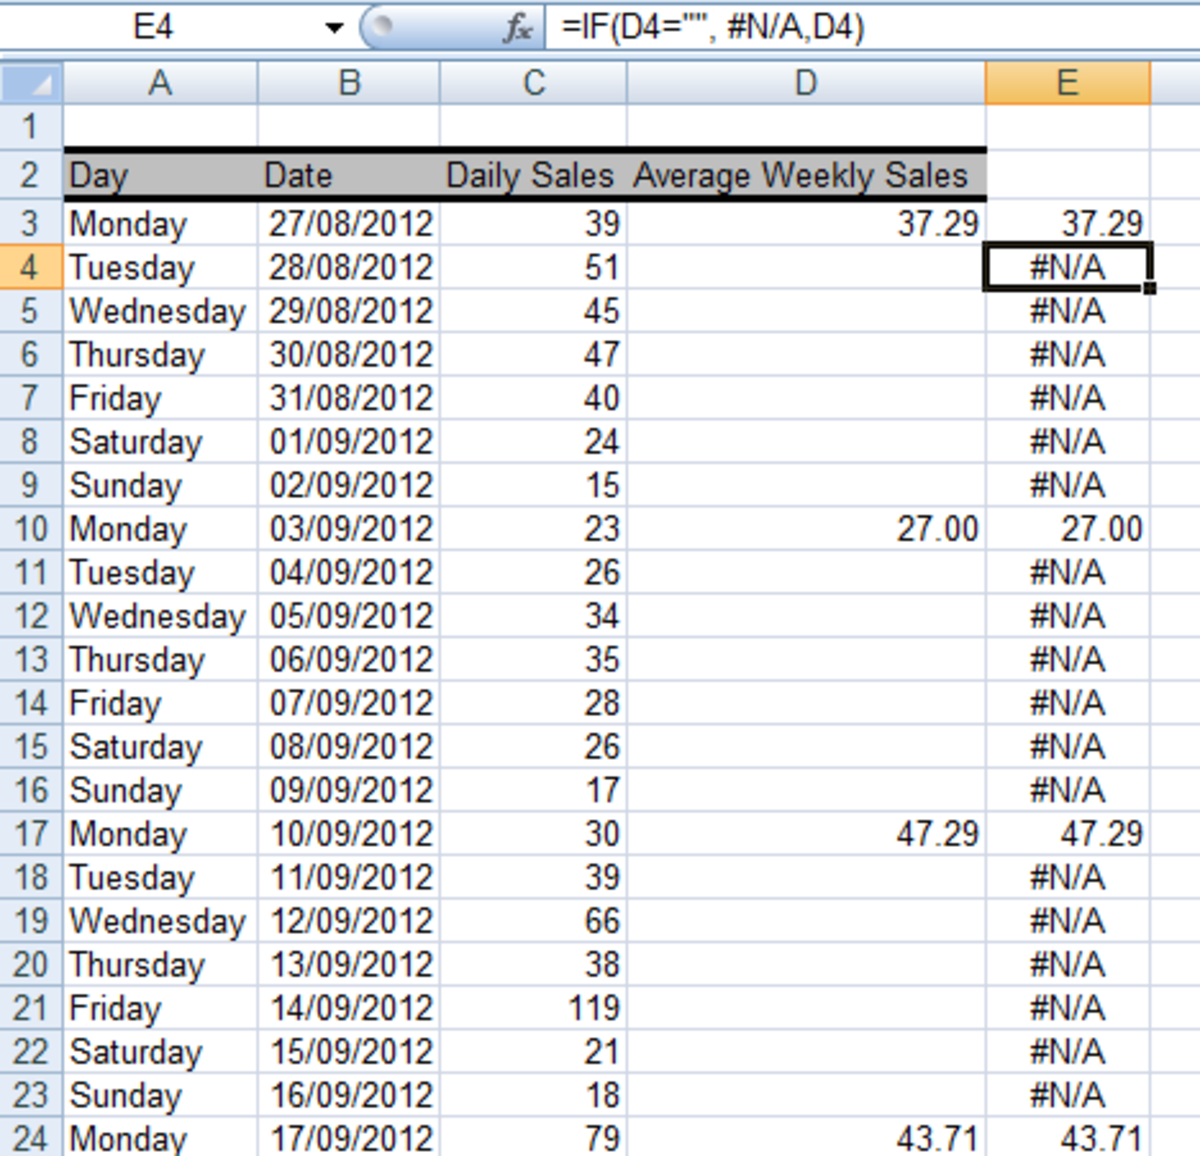 Ediblewildsus  Stunning How To Get Excel  And  To Ignore Empty Cells In A Chart Or  With Outstanding Using The If Function In A Formula To Convert Empty Cells To Na With Adorable Entering Dates In Excel Also Nordictrack Excel In Addition Excel Subtract Two Dates And Excel True False Formula As Well As Create Bar Graph In Excel  Additionally Subtracting Months In Excel From Turbofuturecom With Ediblewildsus  Outstanding How To Get Excel  And  To Ignore Empty Cells In A Chart Or  With Adorable Using The If Function In A Formula To Convert Empty Cells To Na And Stunning Entering Dates In Excel Also Nordictrack Excel In Addition Excel Subtract Two Dates From Turbofuturecom